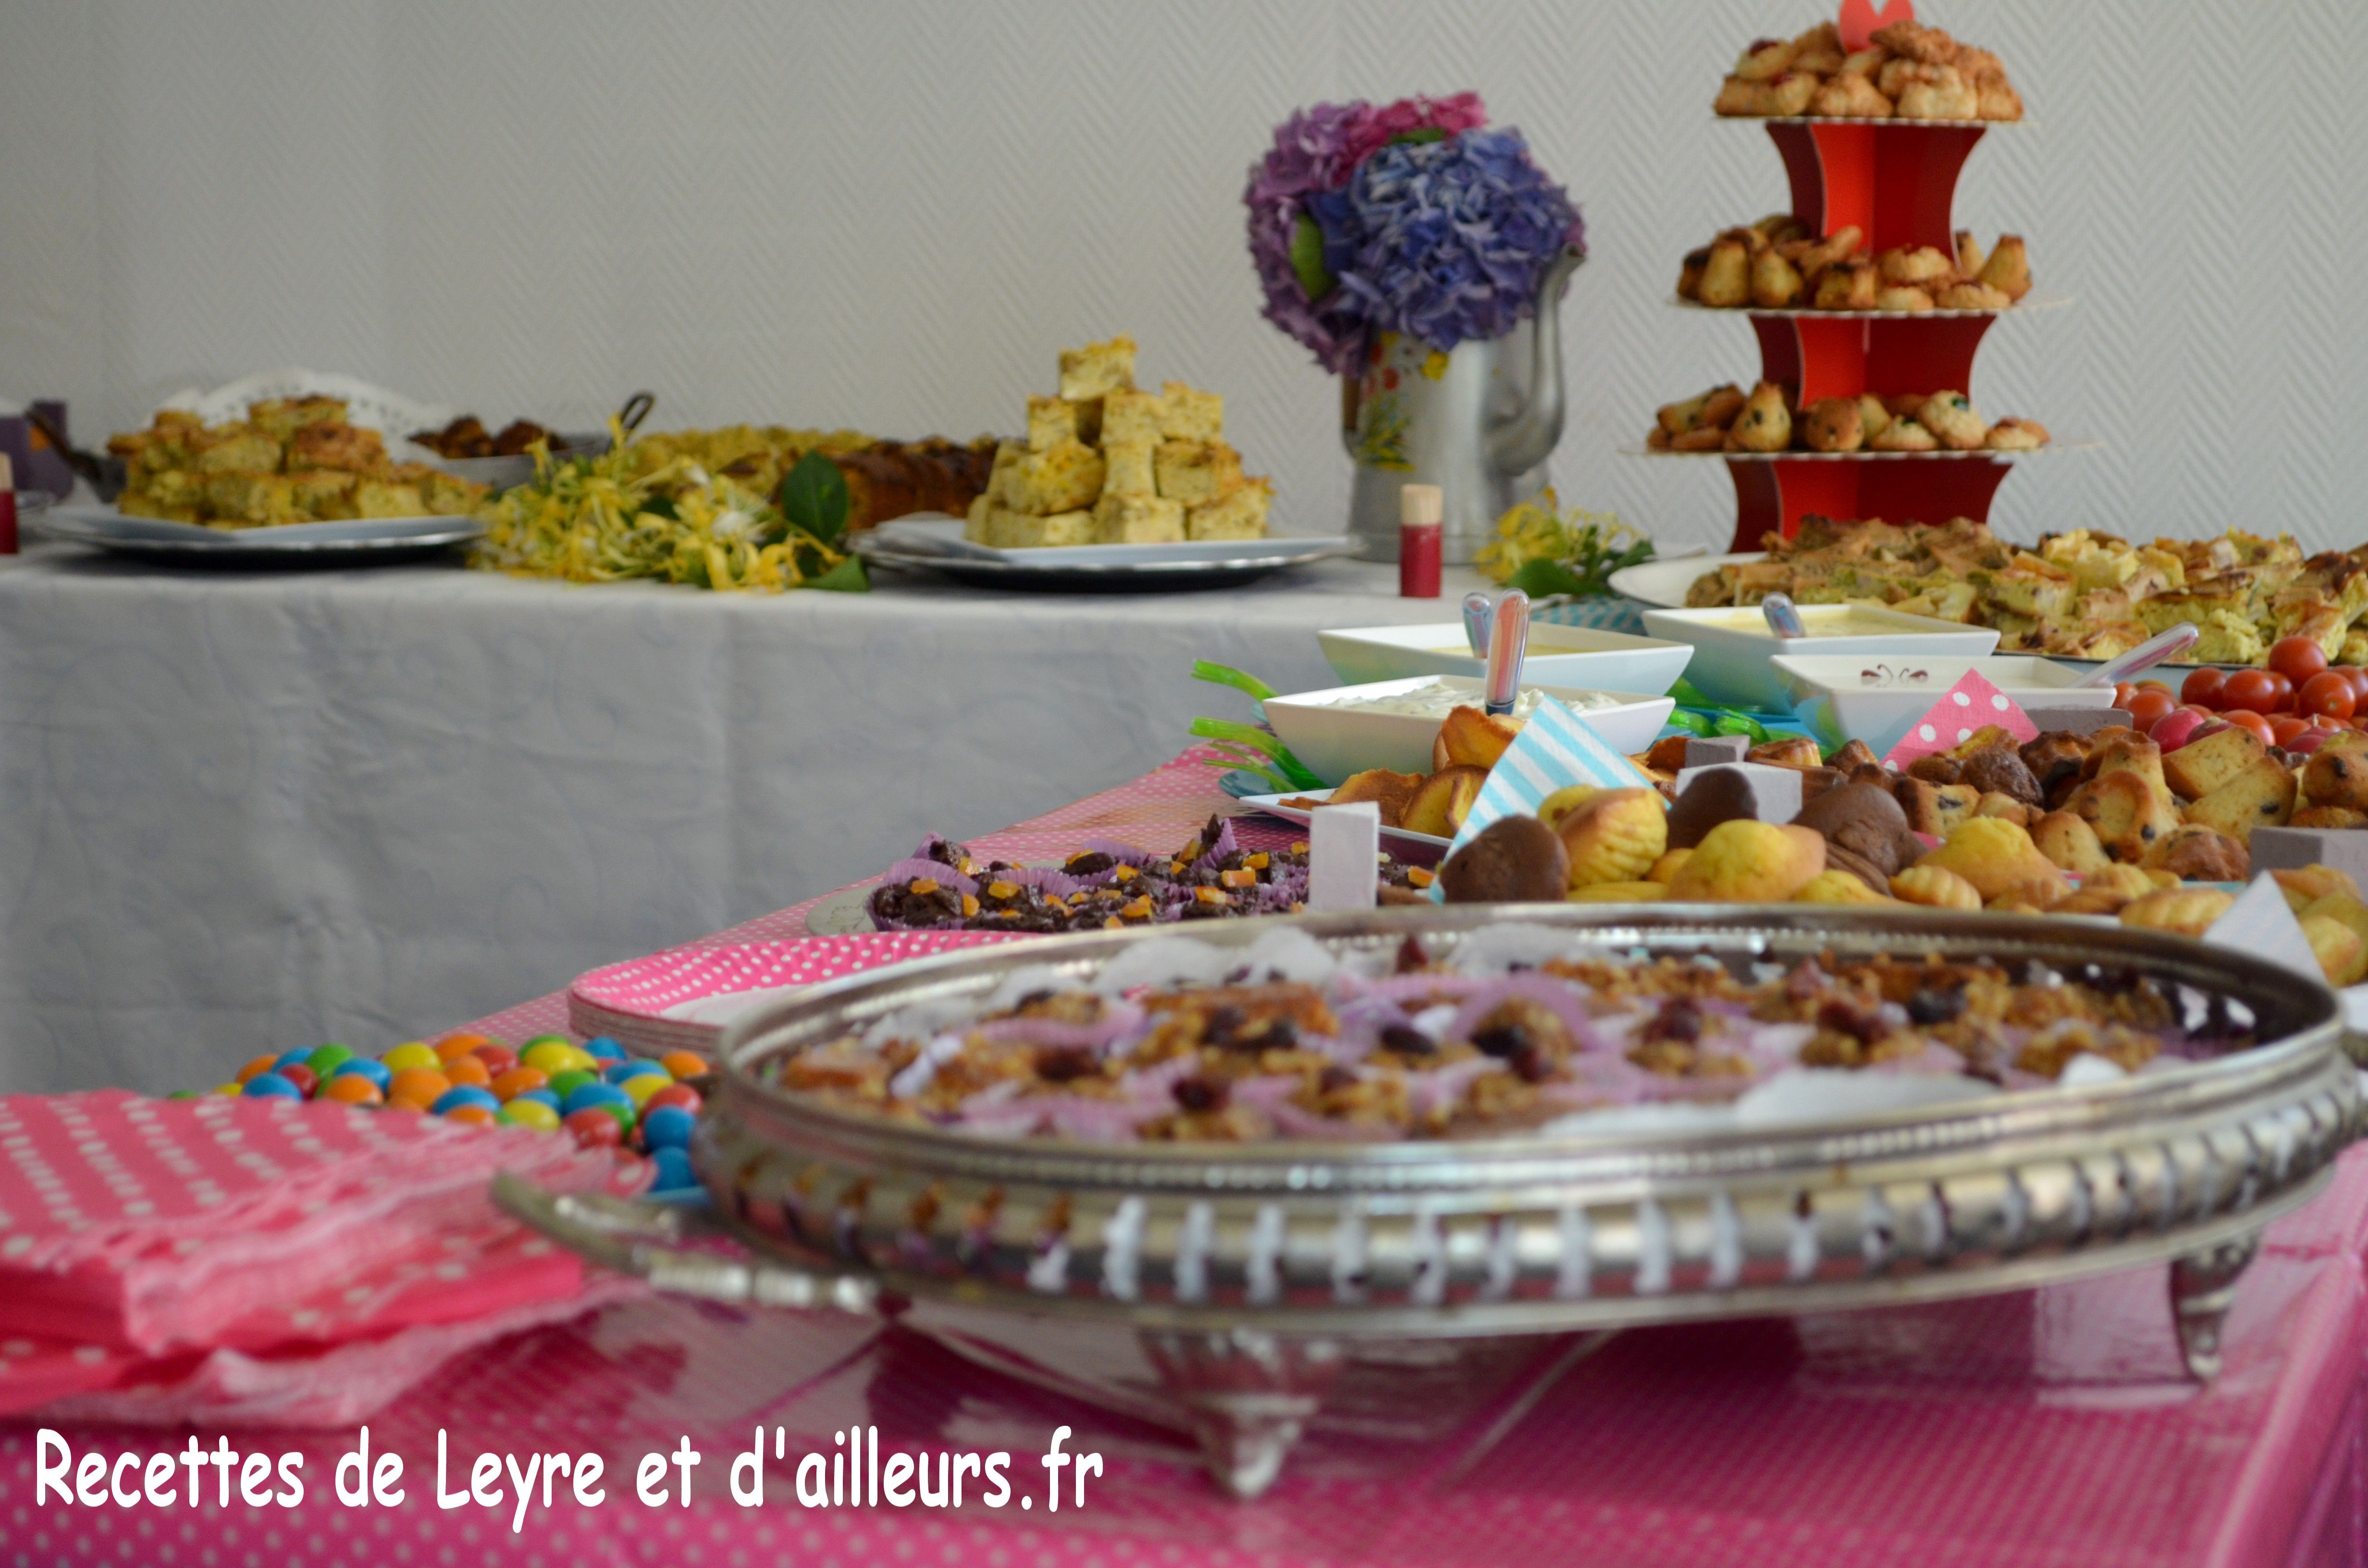 Planning Pour L Organisation D Un Buffet Froid Pour 50 Personnes Buffet Froid Pour 50 Personnes Buffet Alimentaire Buffet Froid